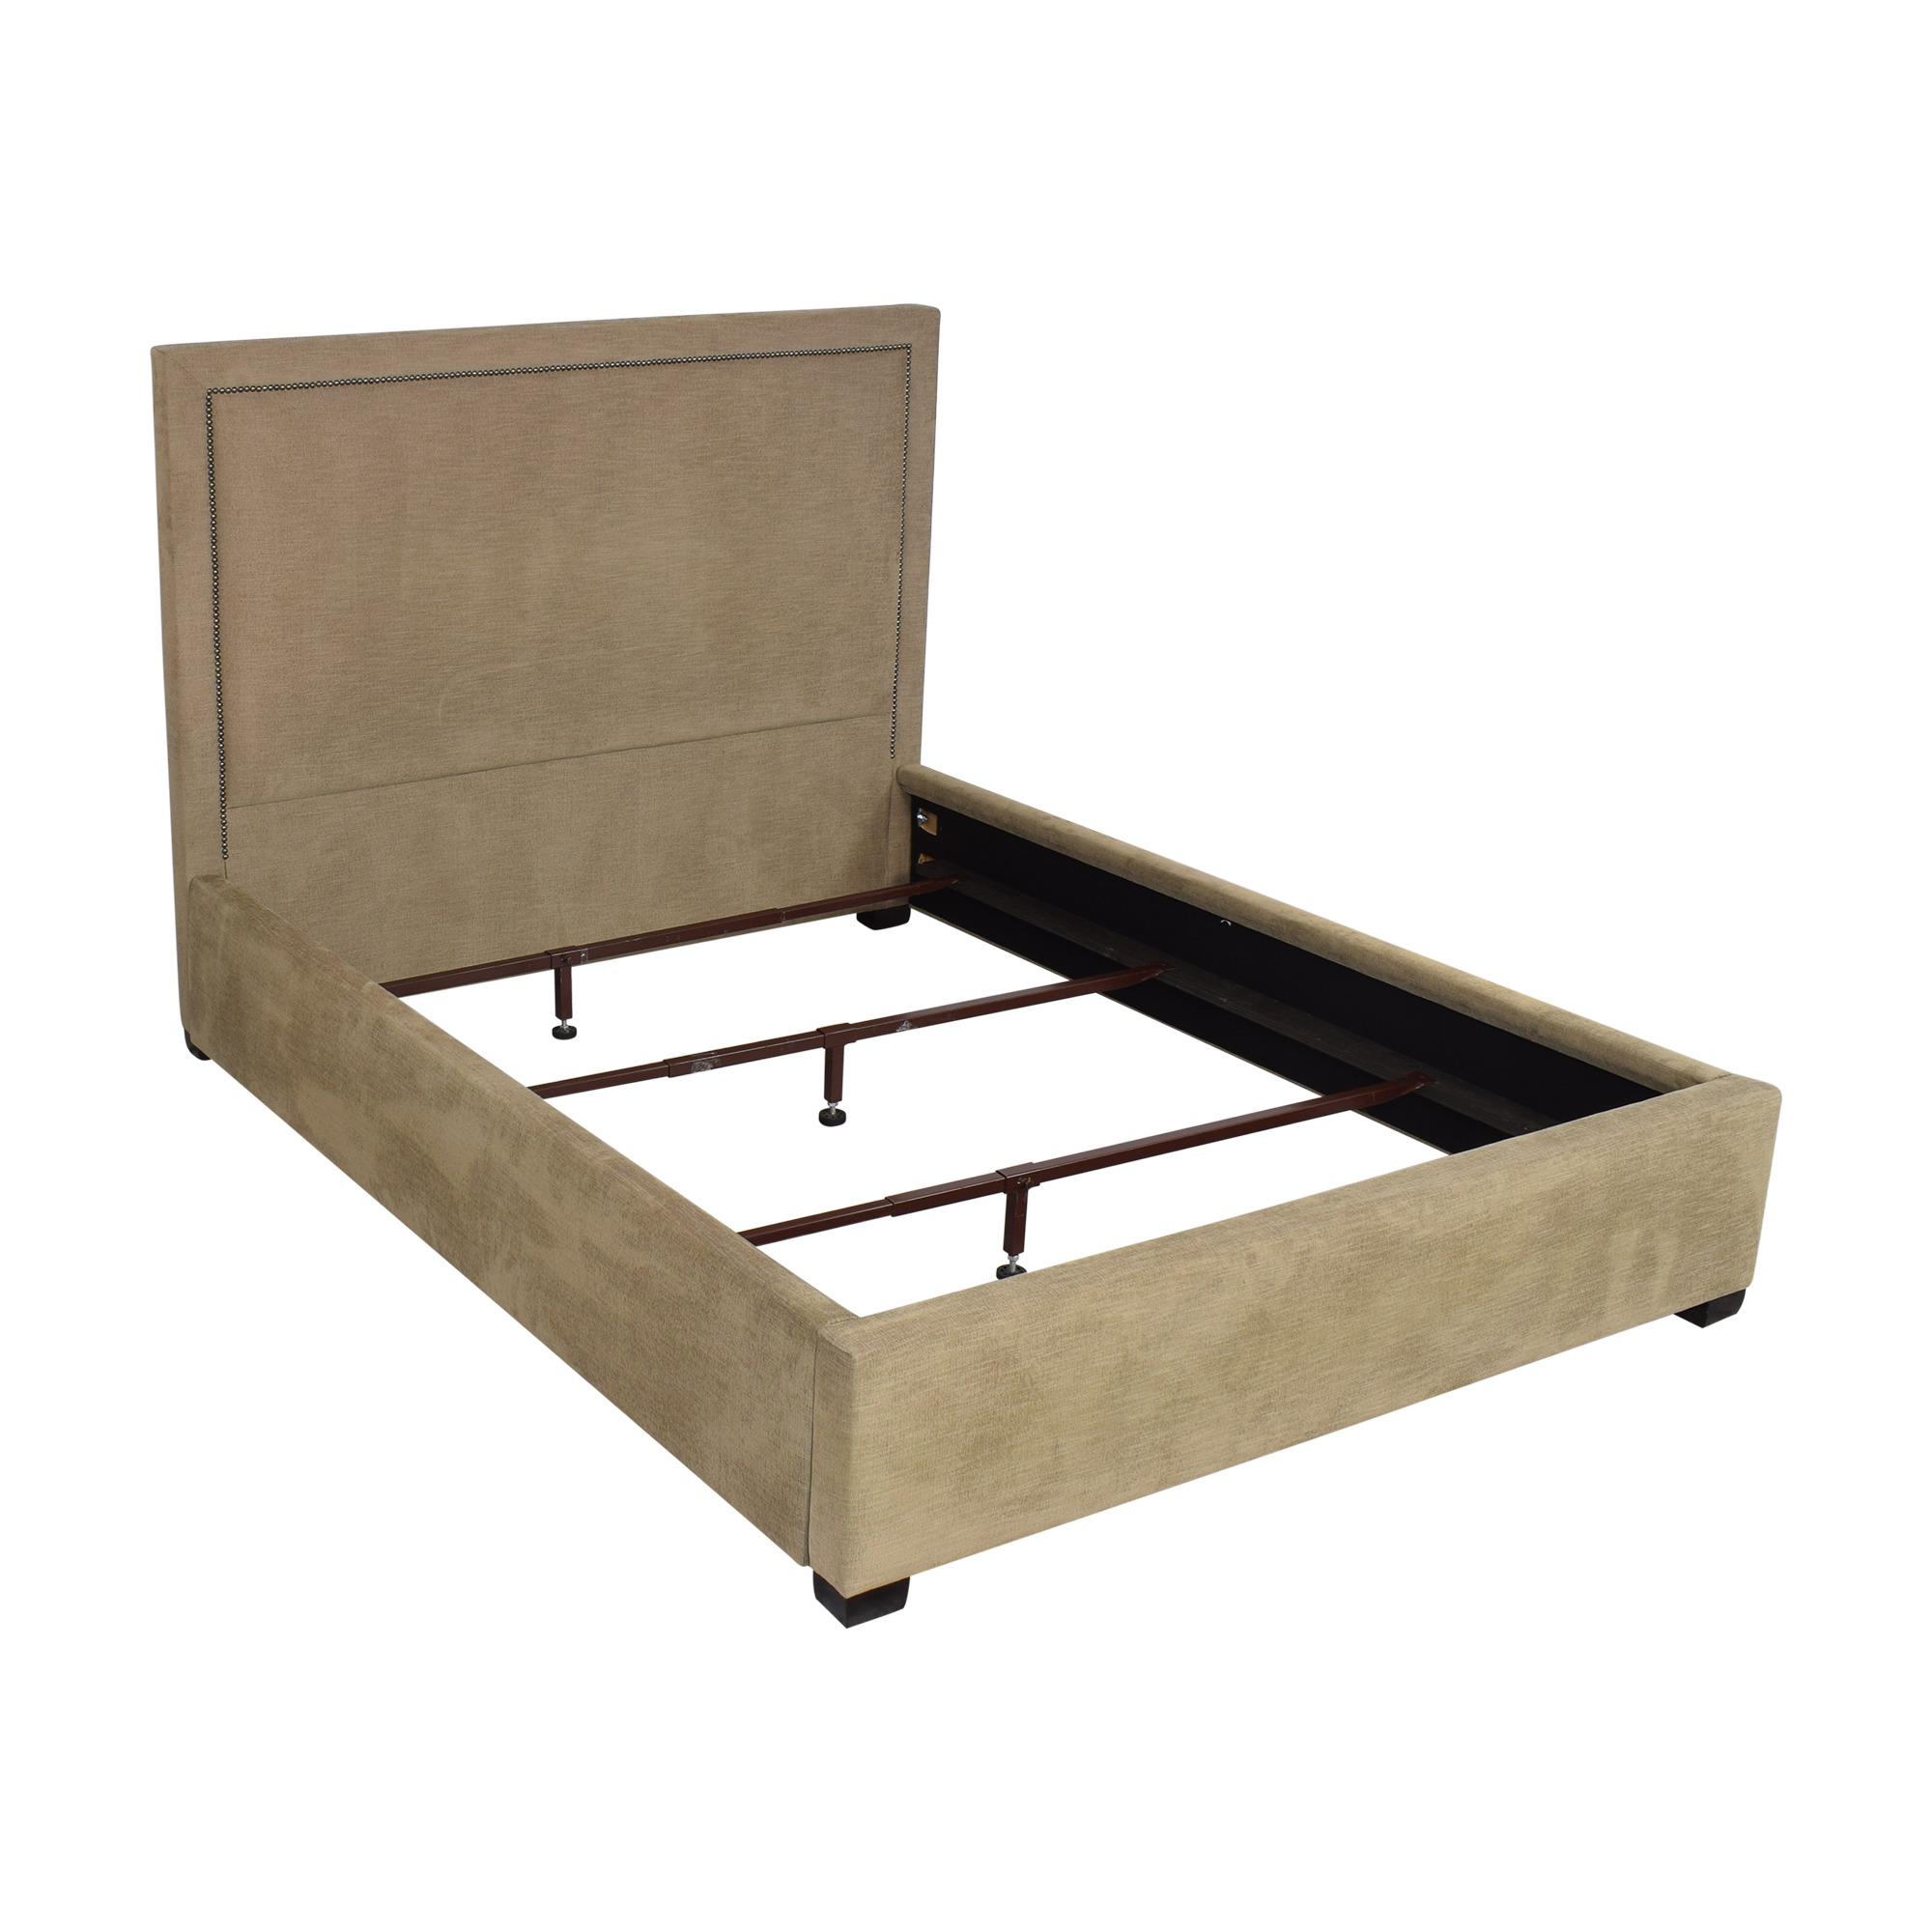 Raymour & Flanigan Raymour & Flanigan Maria Queen Bed discount